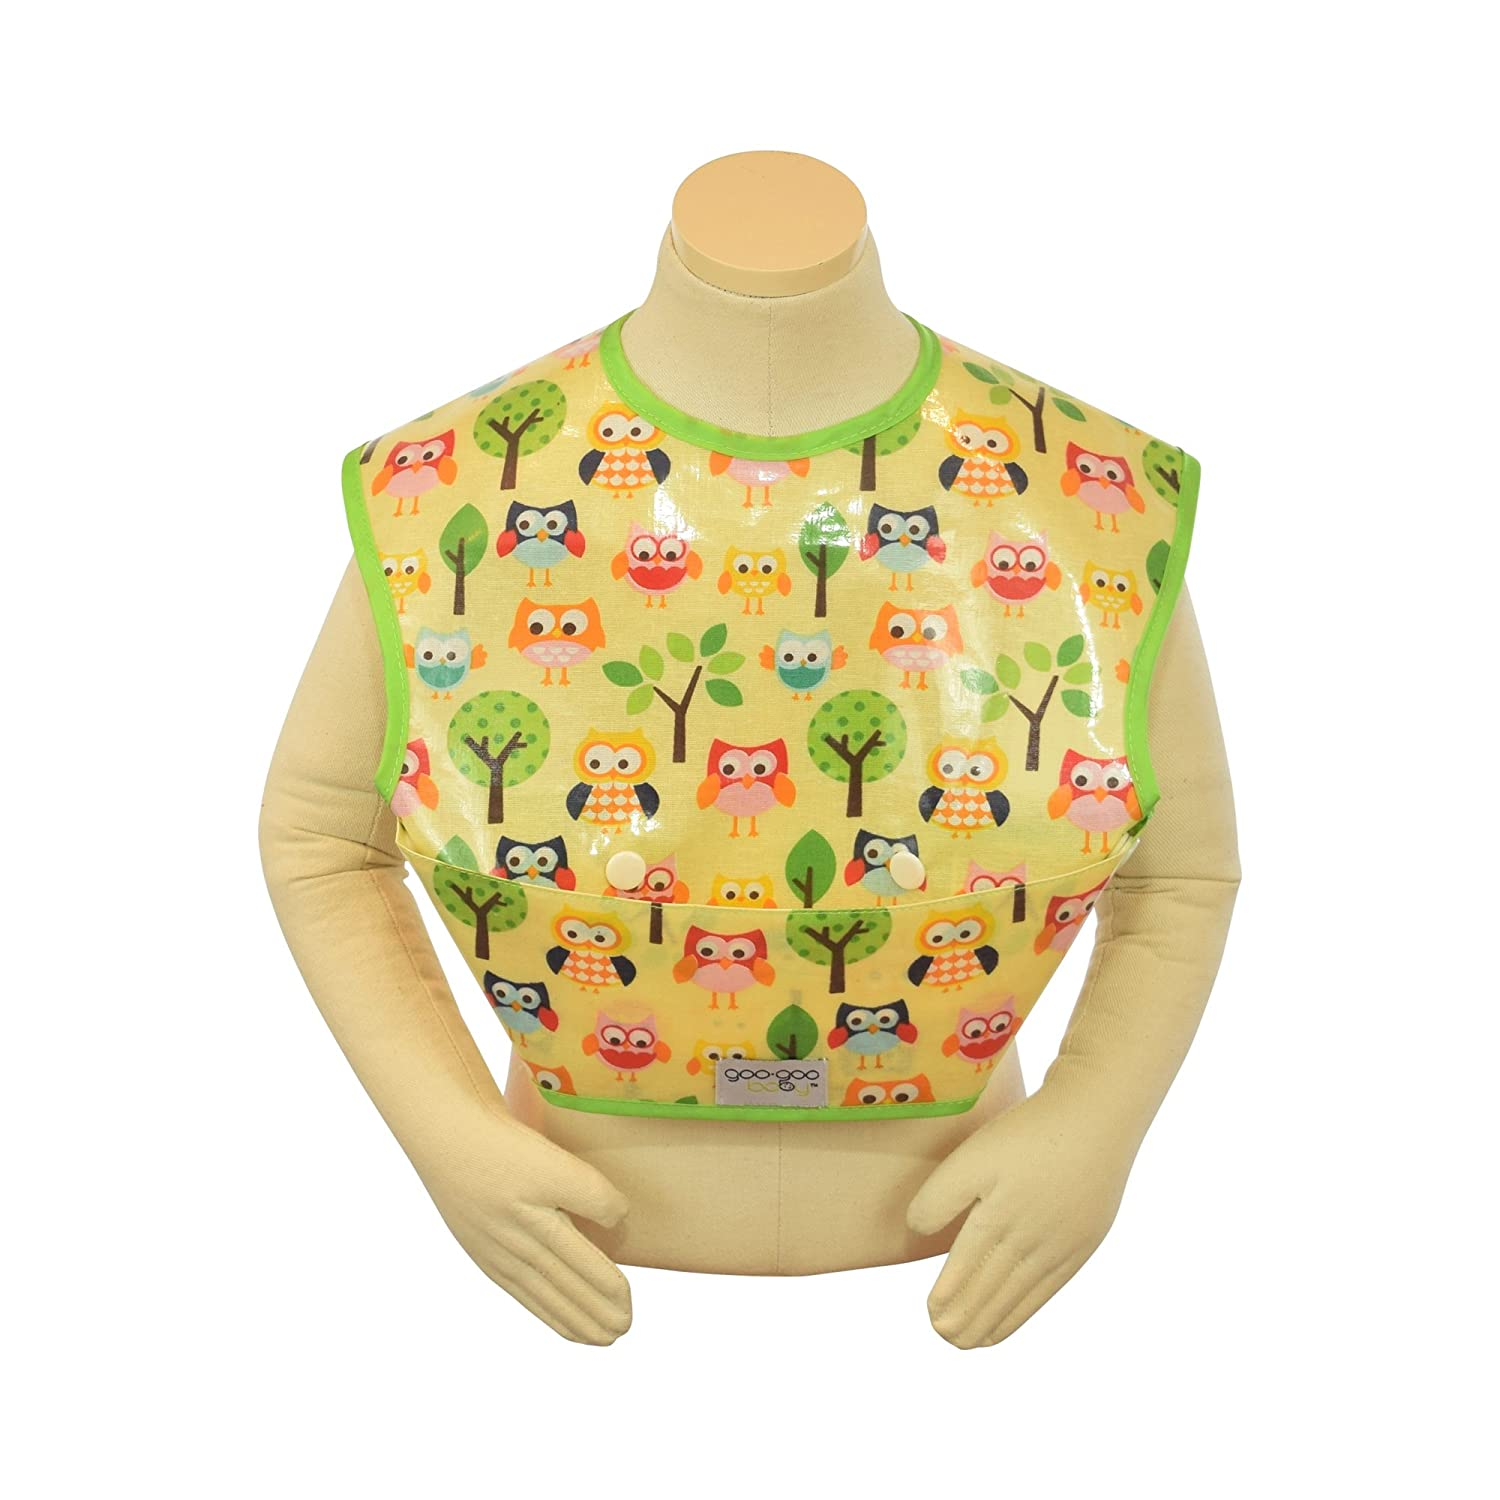 Goo-Goo Baby Perfect Pocket Bib in Sunny Owls, Size 2-4 Years, Large PPB-SUNNYOWL-L